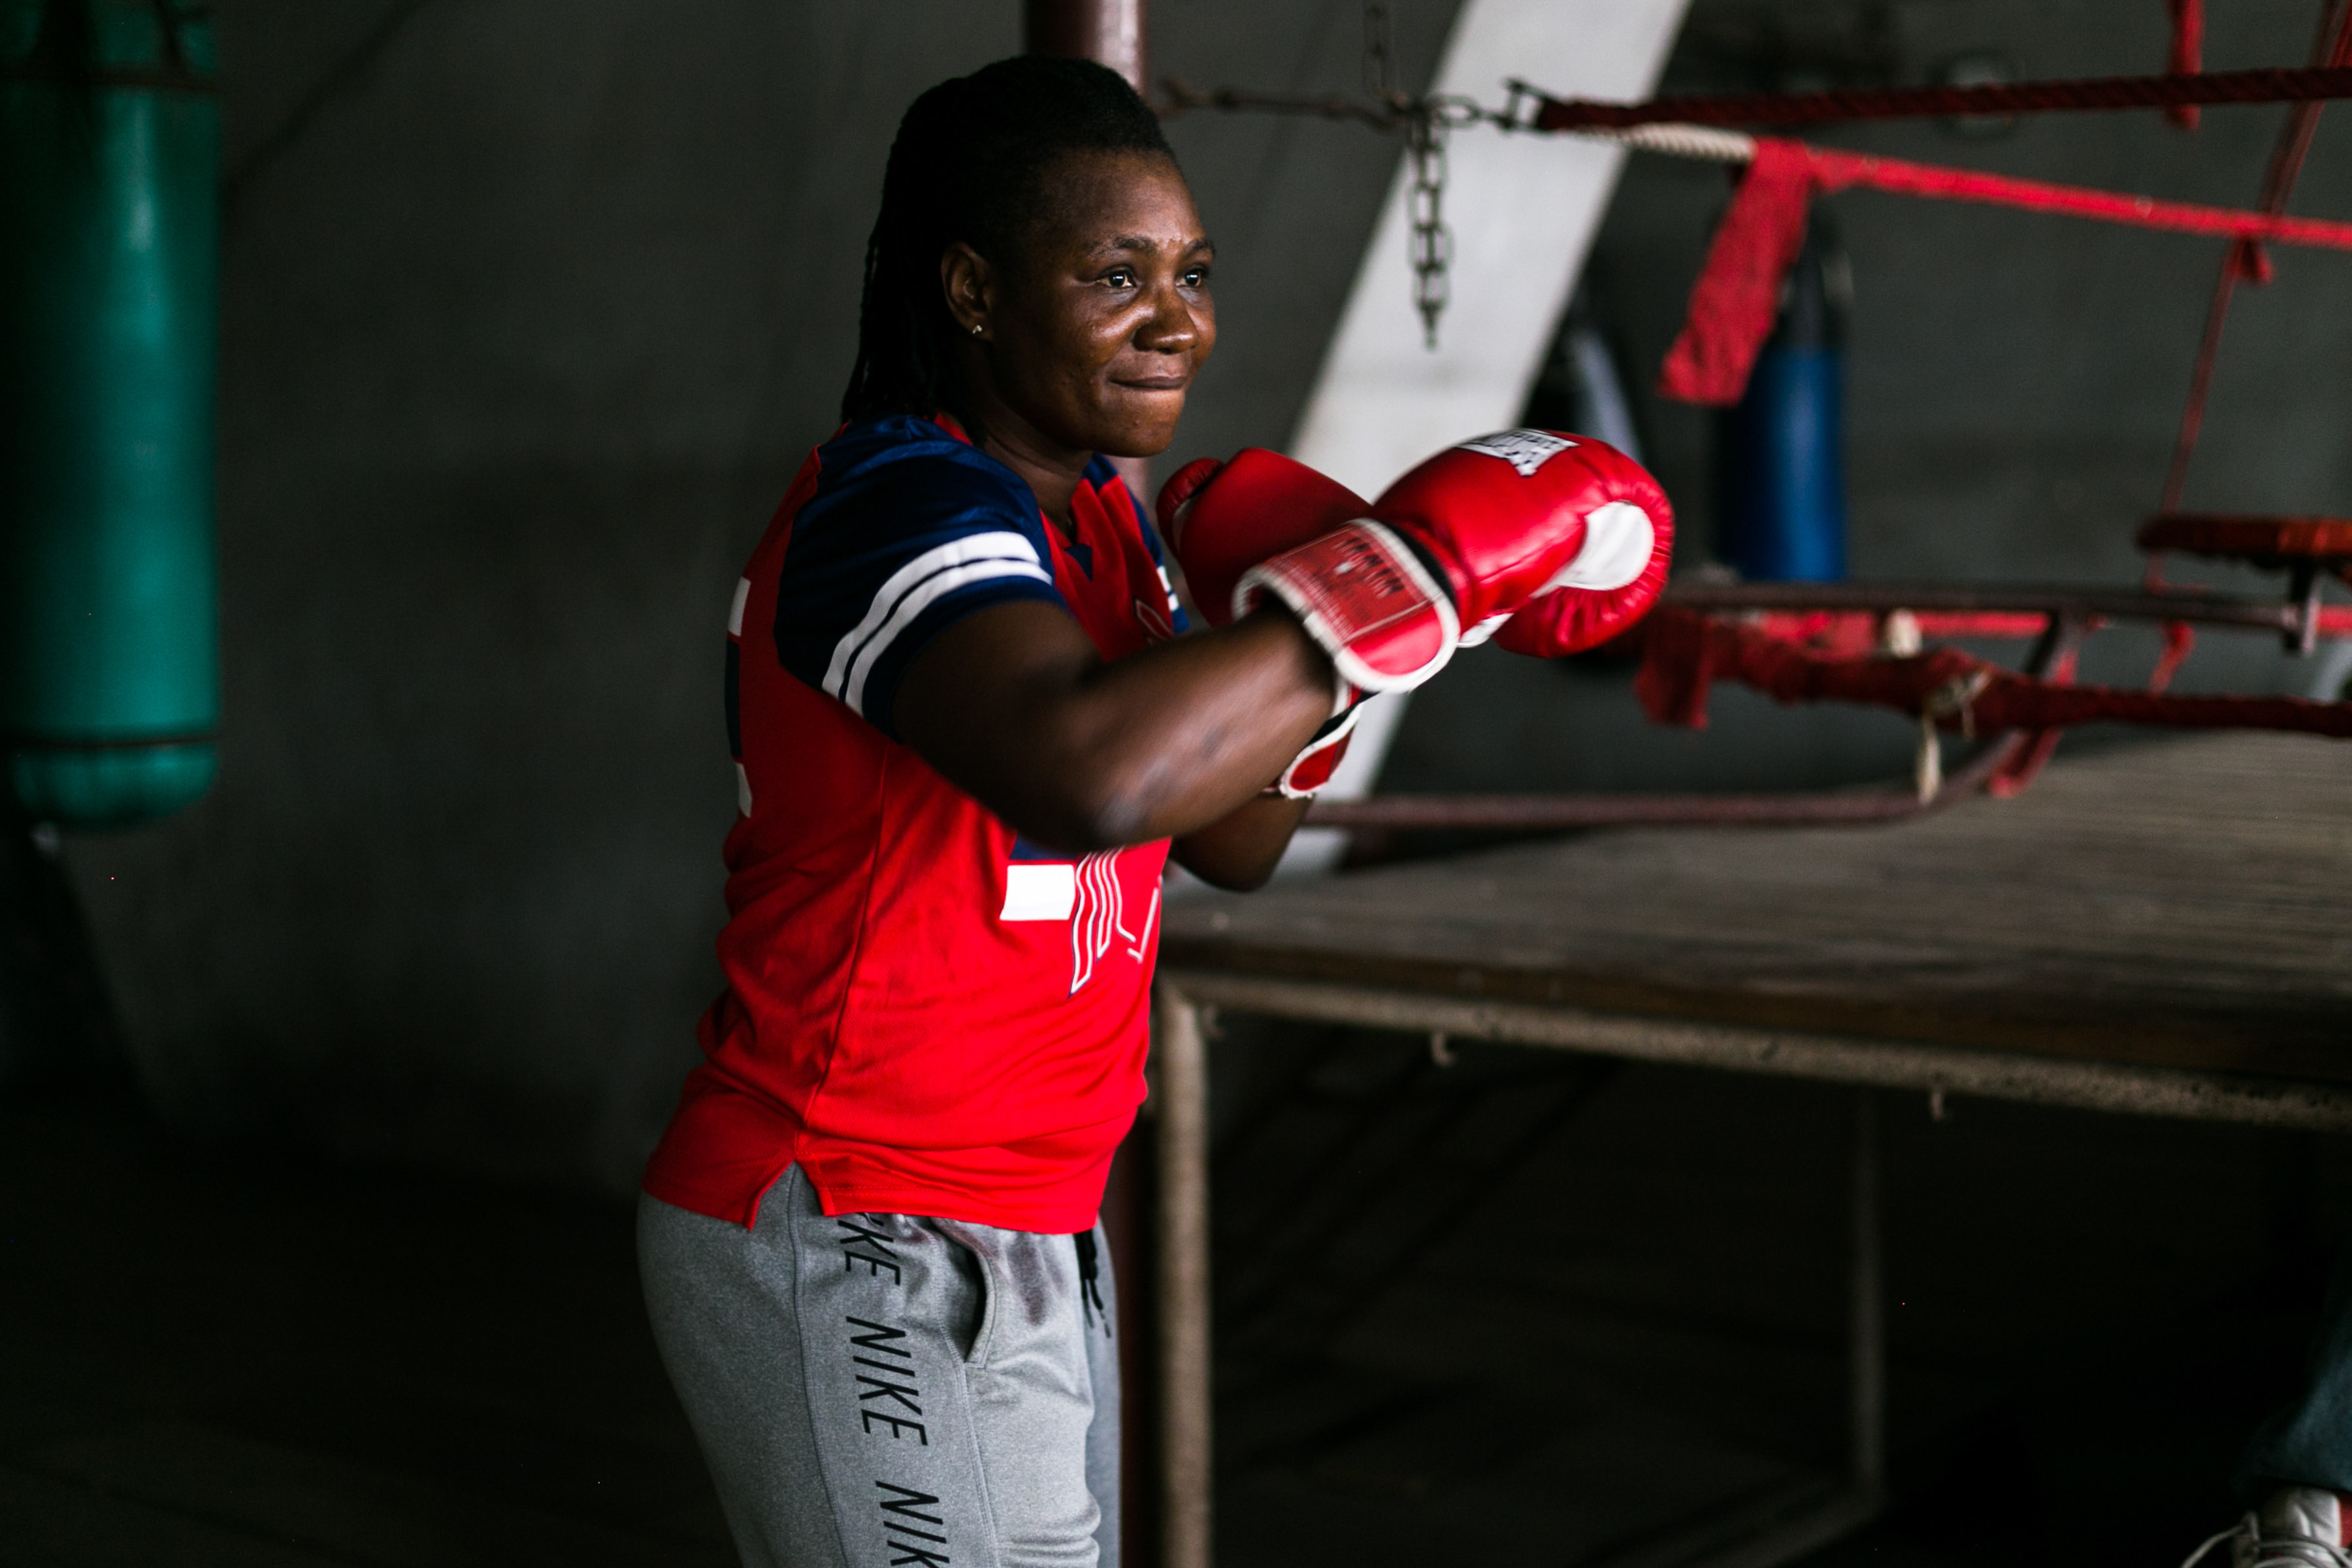 11 July 2019: Edith Agu Ogoke warming up for a sparring session in the National Stadium gym.